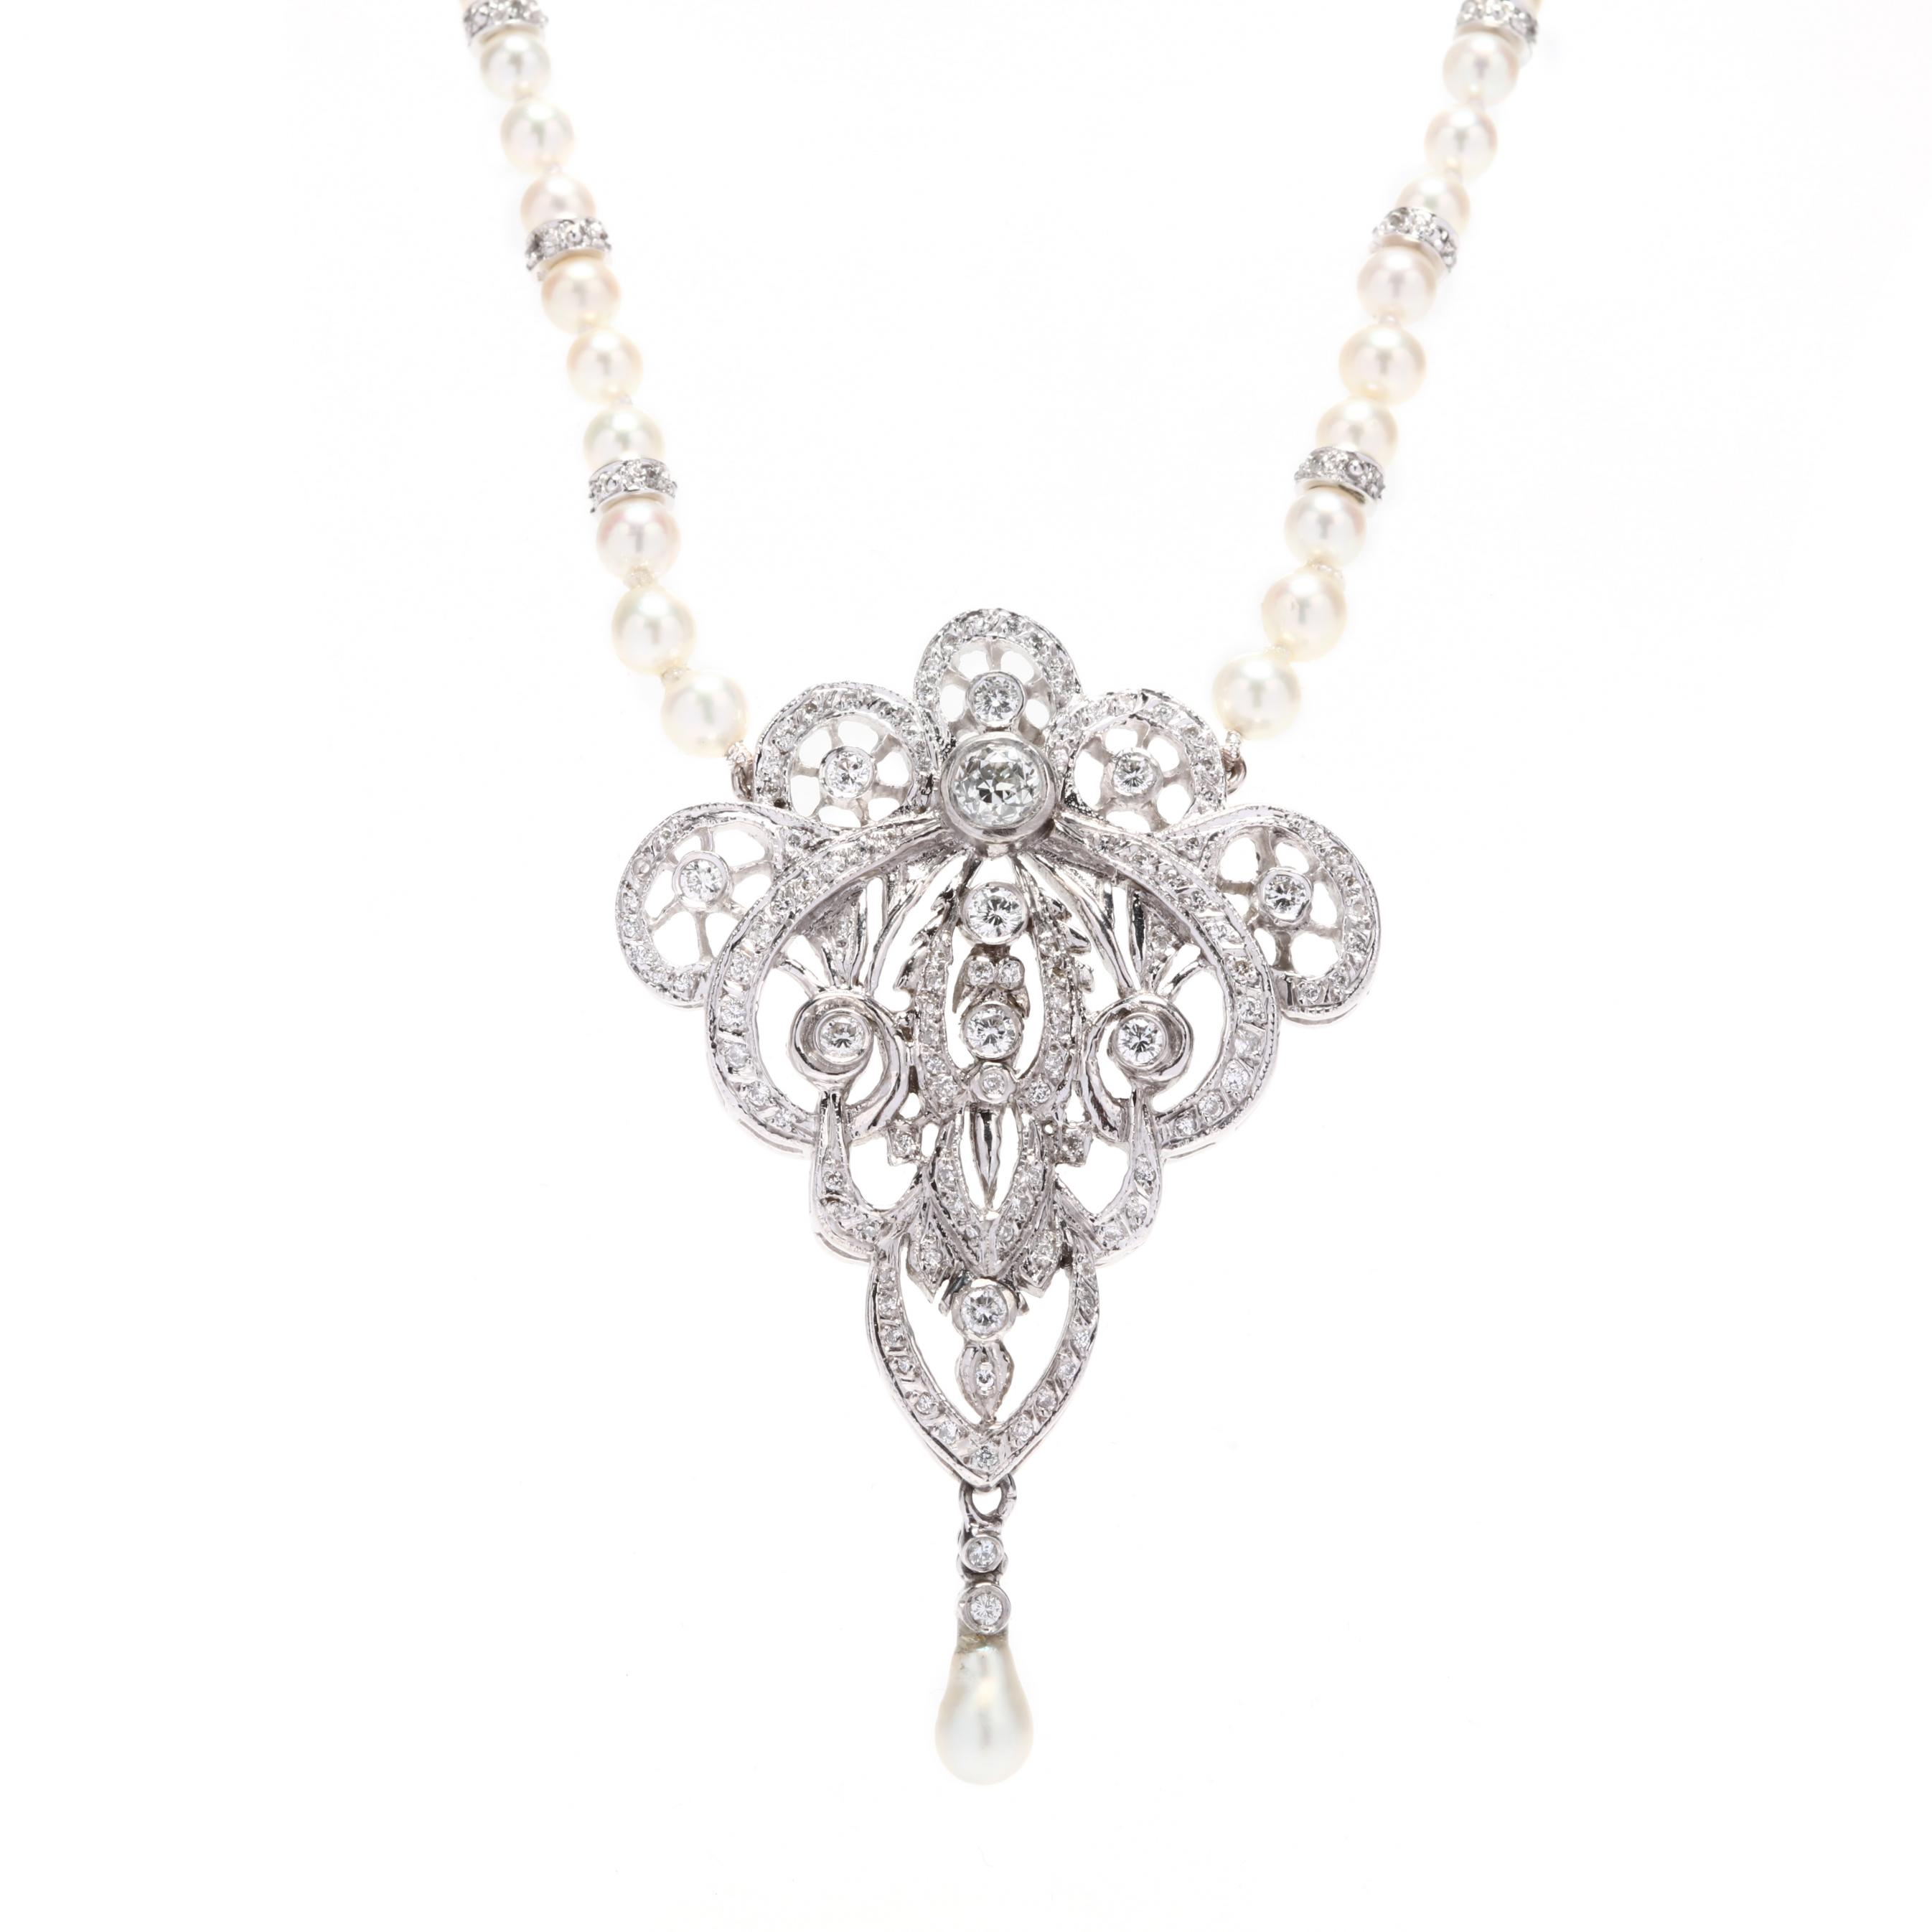 edwardian-style-platinum-diamond-pendant-and-pearl-and-diamond-necklace